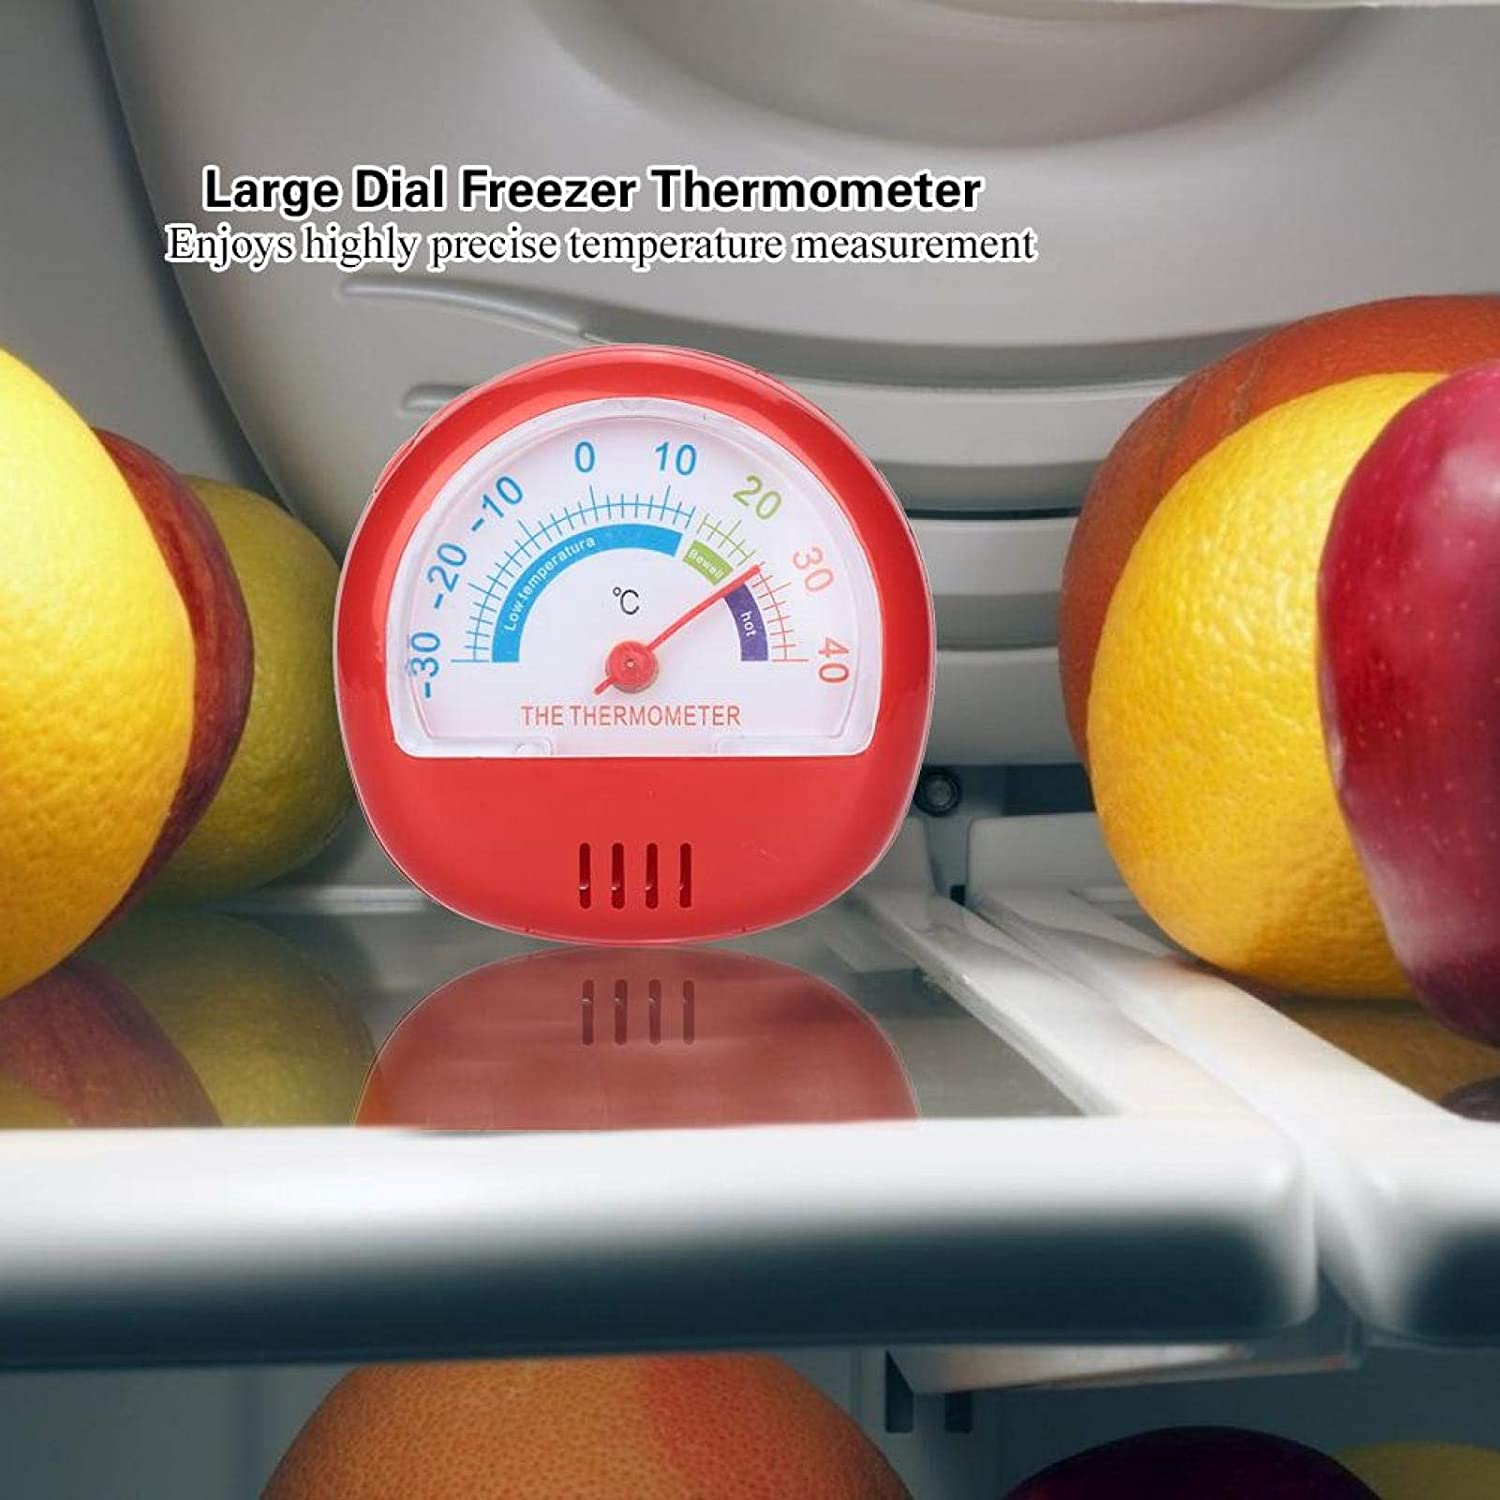 Freezer Thermometer ABS Bargain Dial Large Free Complete Shipping